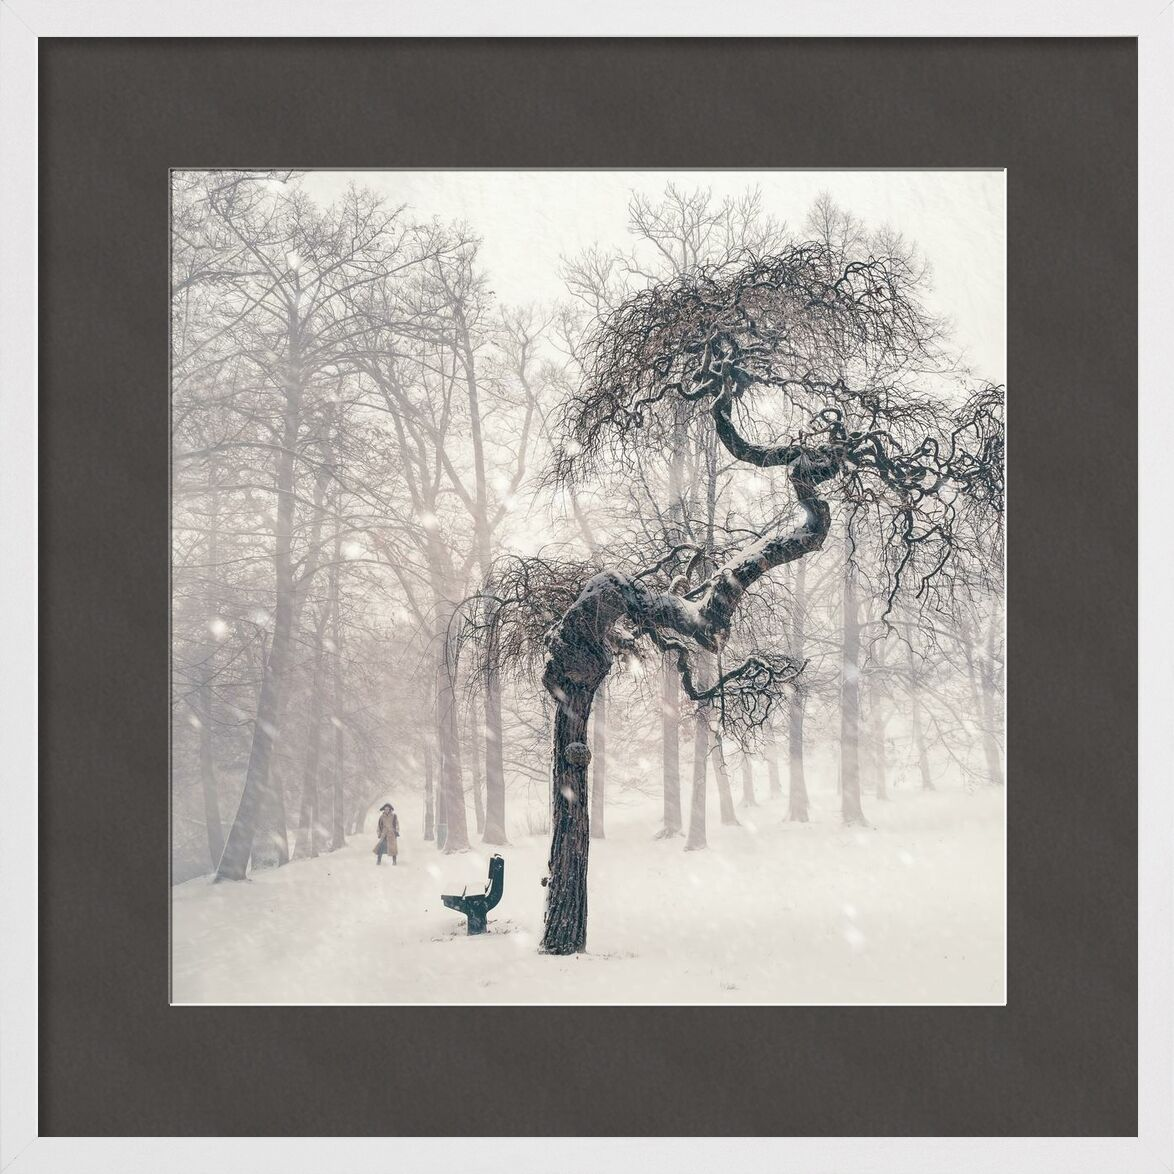 Résistance from Aliss ART, Prodi Art, cold, foggy, forest, freezing, frosty, frozen, icy, landscape, fog, nature, person, snow, snowy, trees, weather, winter, bench, branches, dark, snowstorm, woods